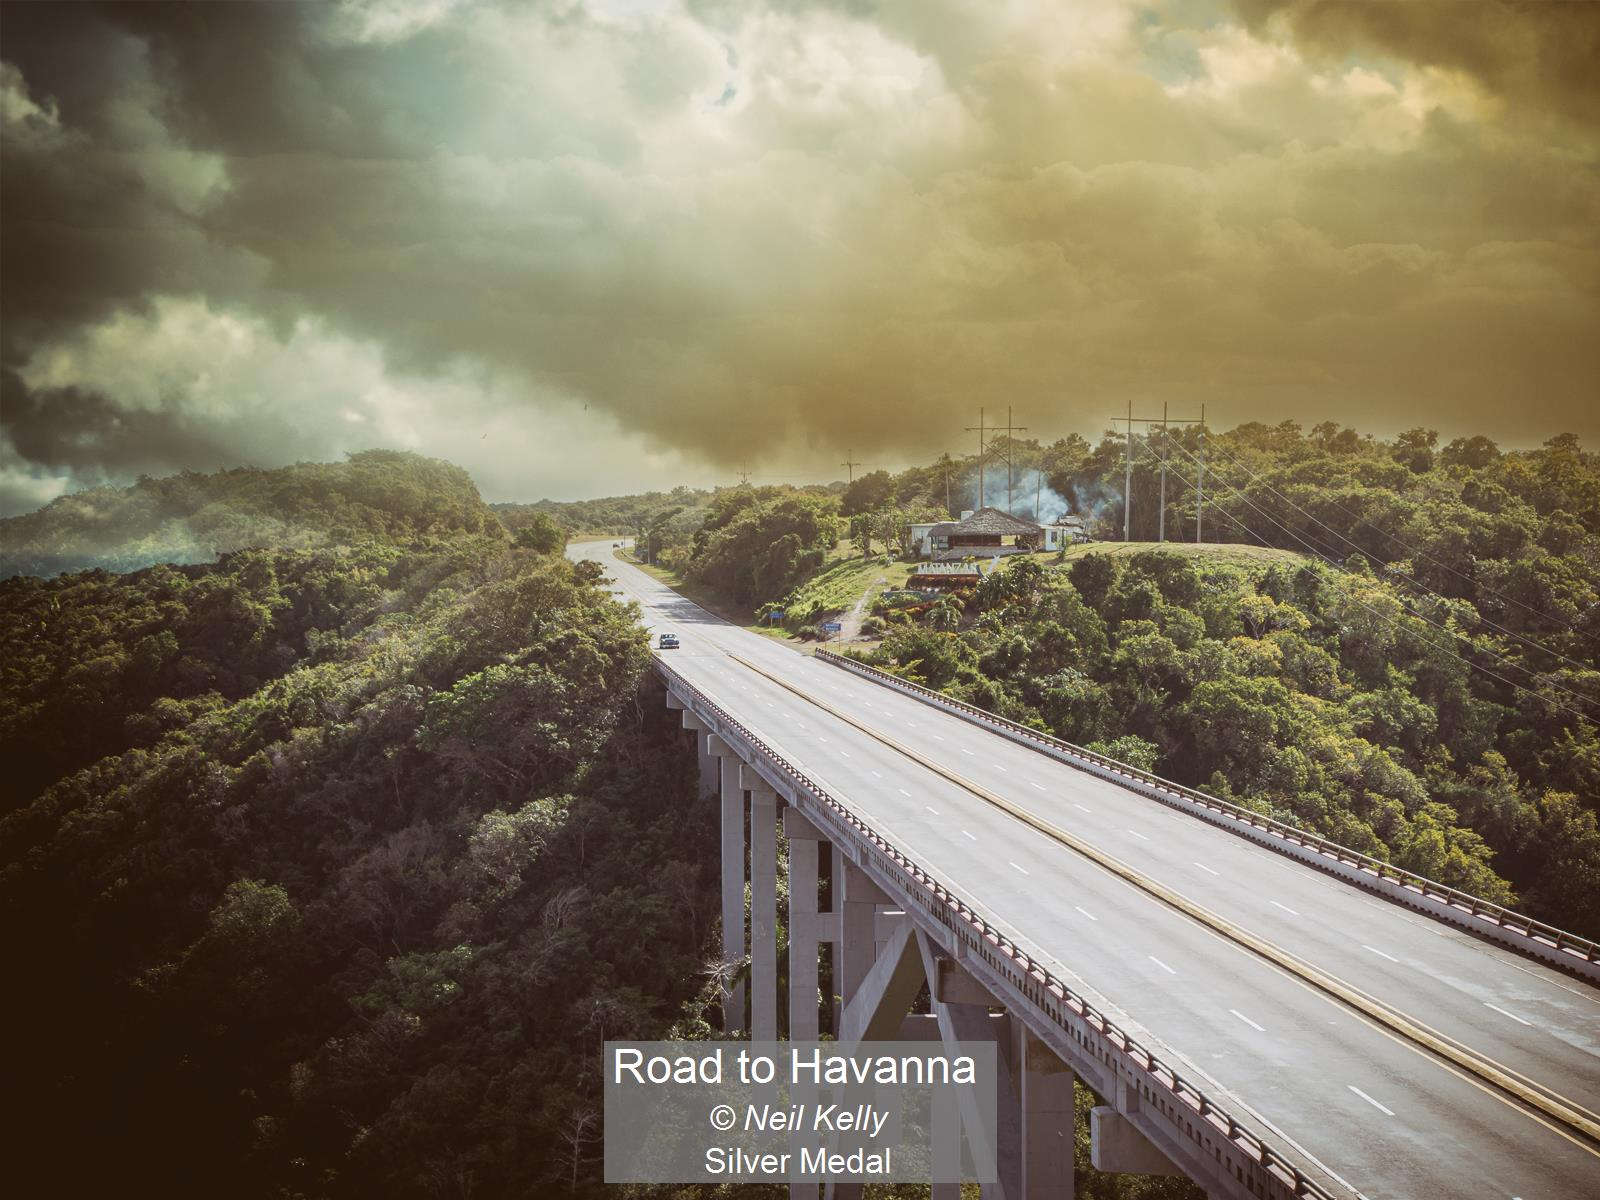 Road to Havanna_Neil Kelly_Silver